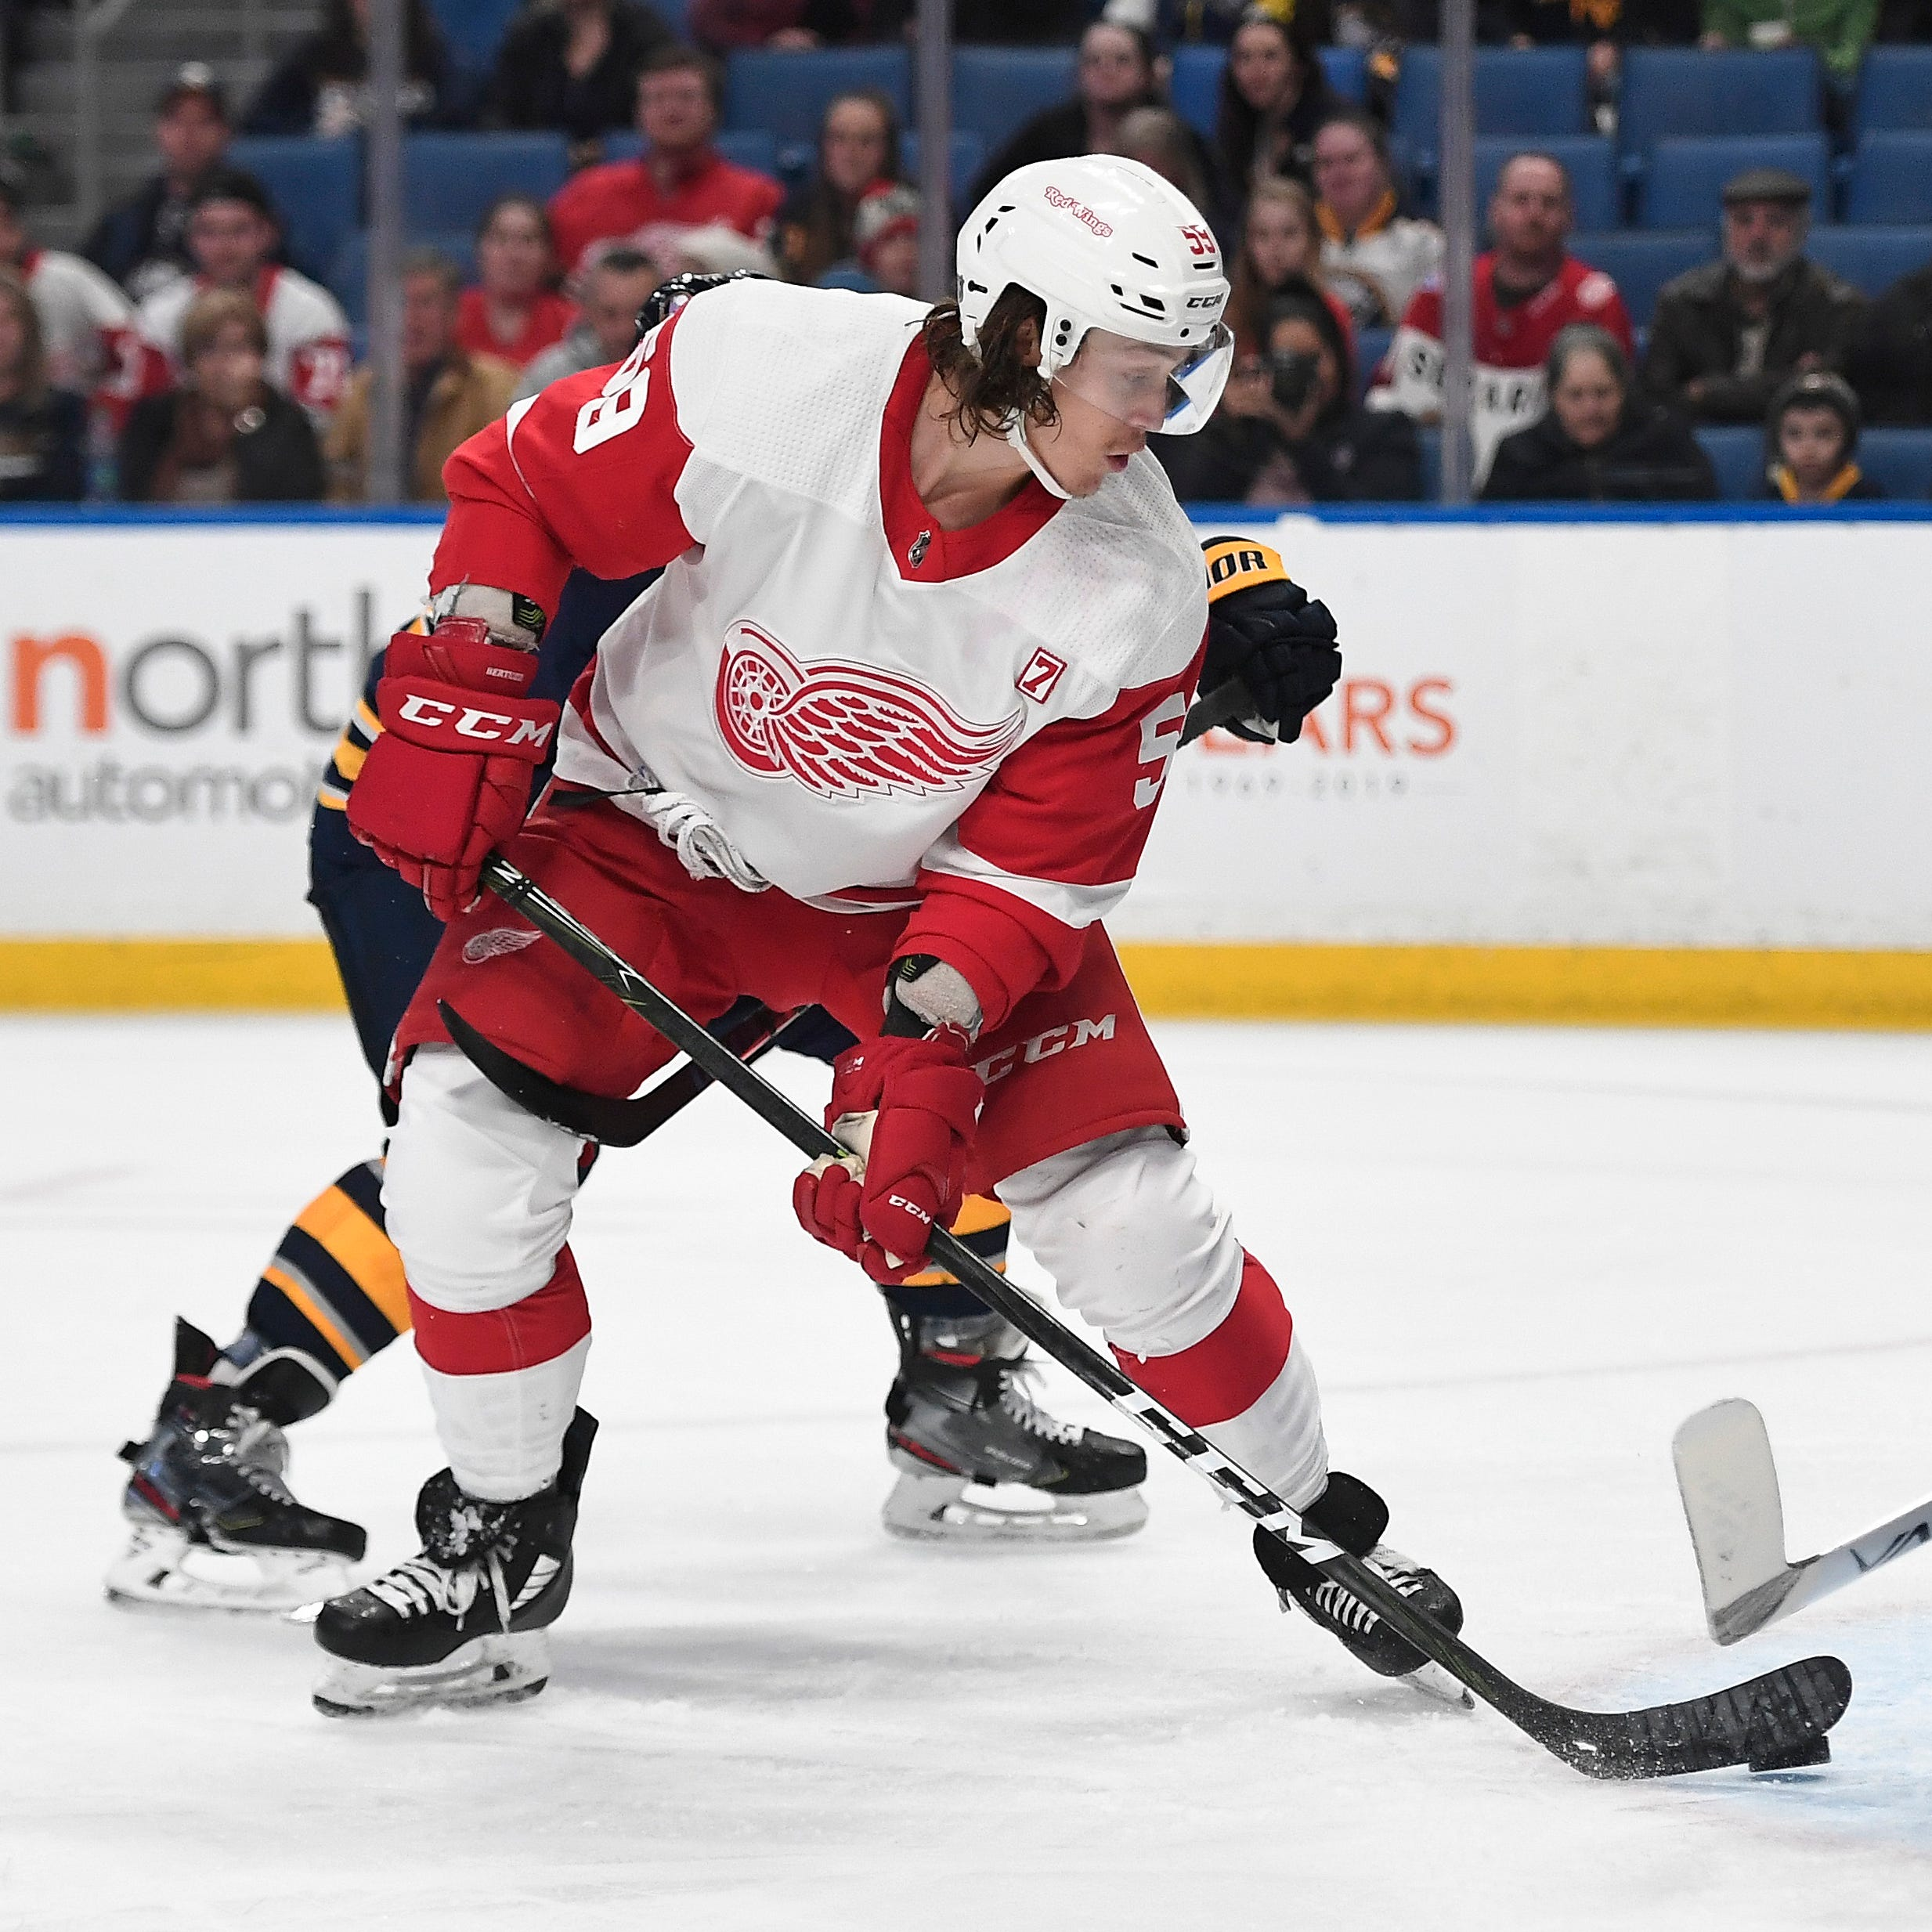 Red Wings vs. Sabres: Final game has huge draft lottery implications